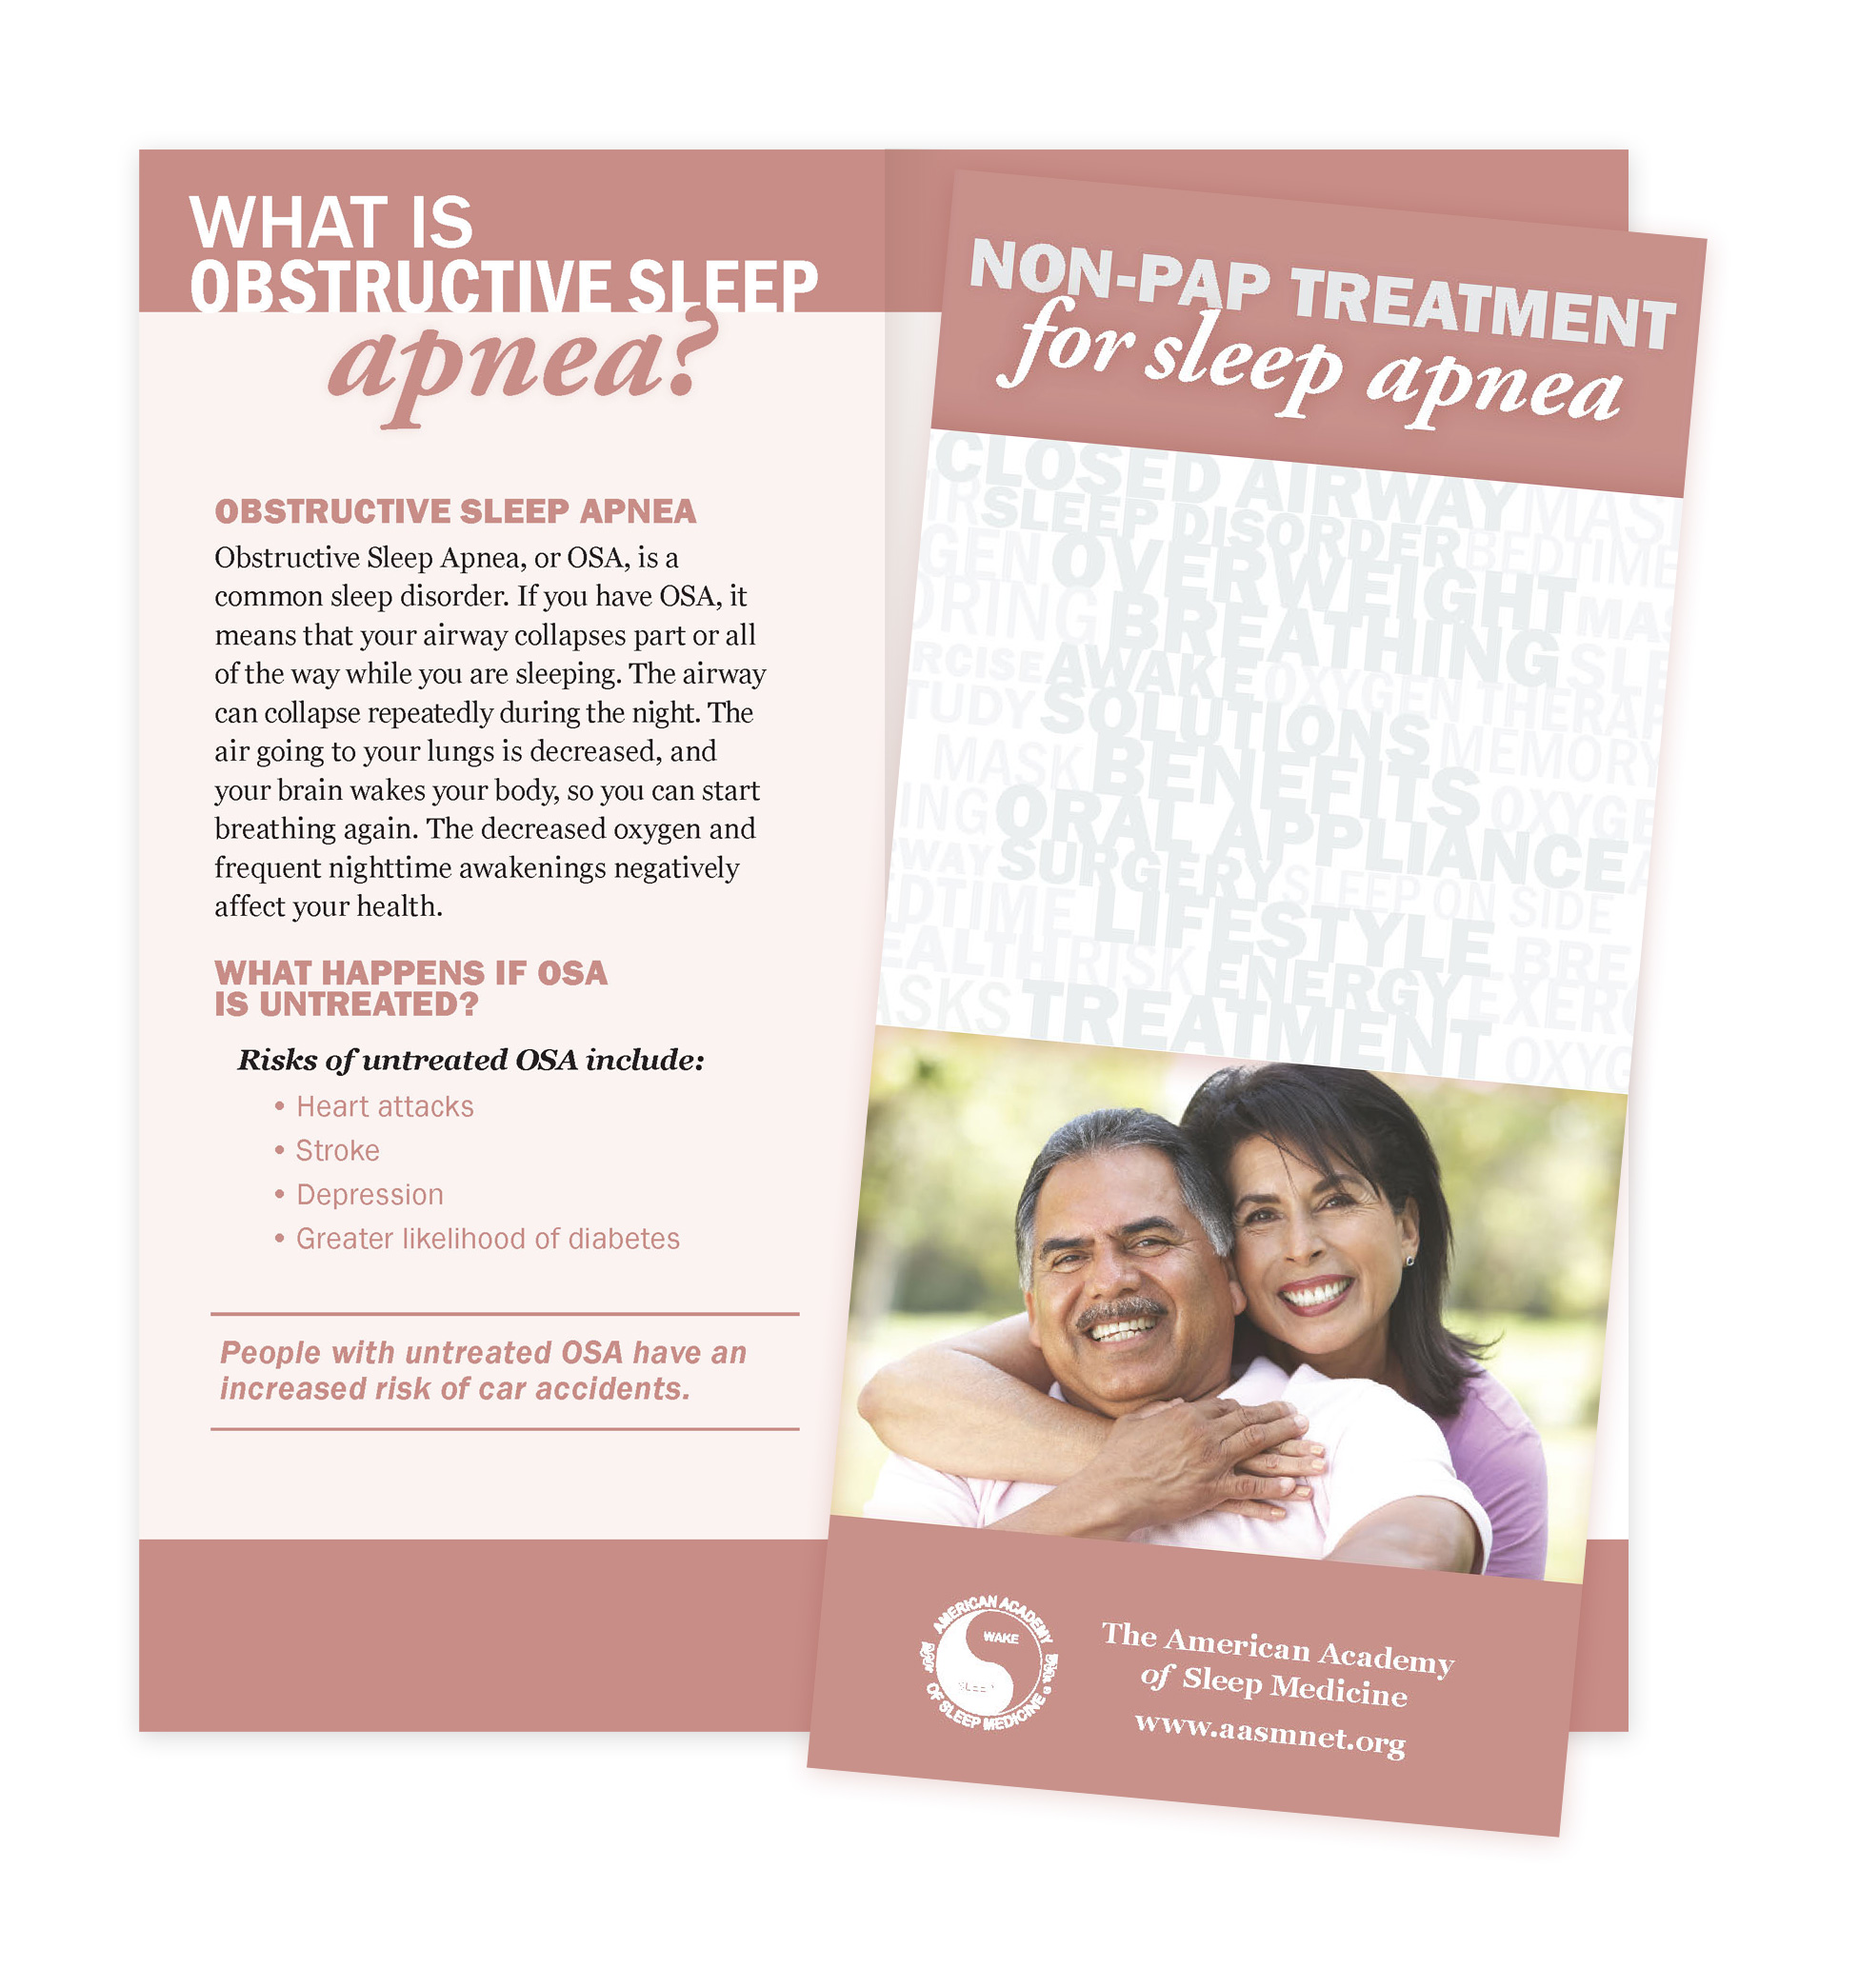 Non-PAP Treatment for Sleep Apnea Patient Education Brochures (50 brochures)